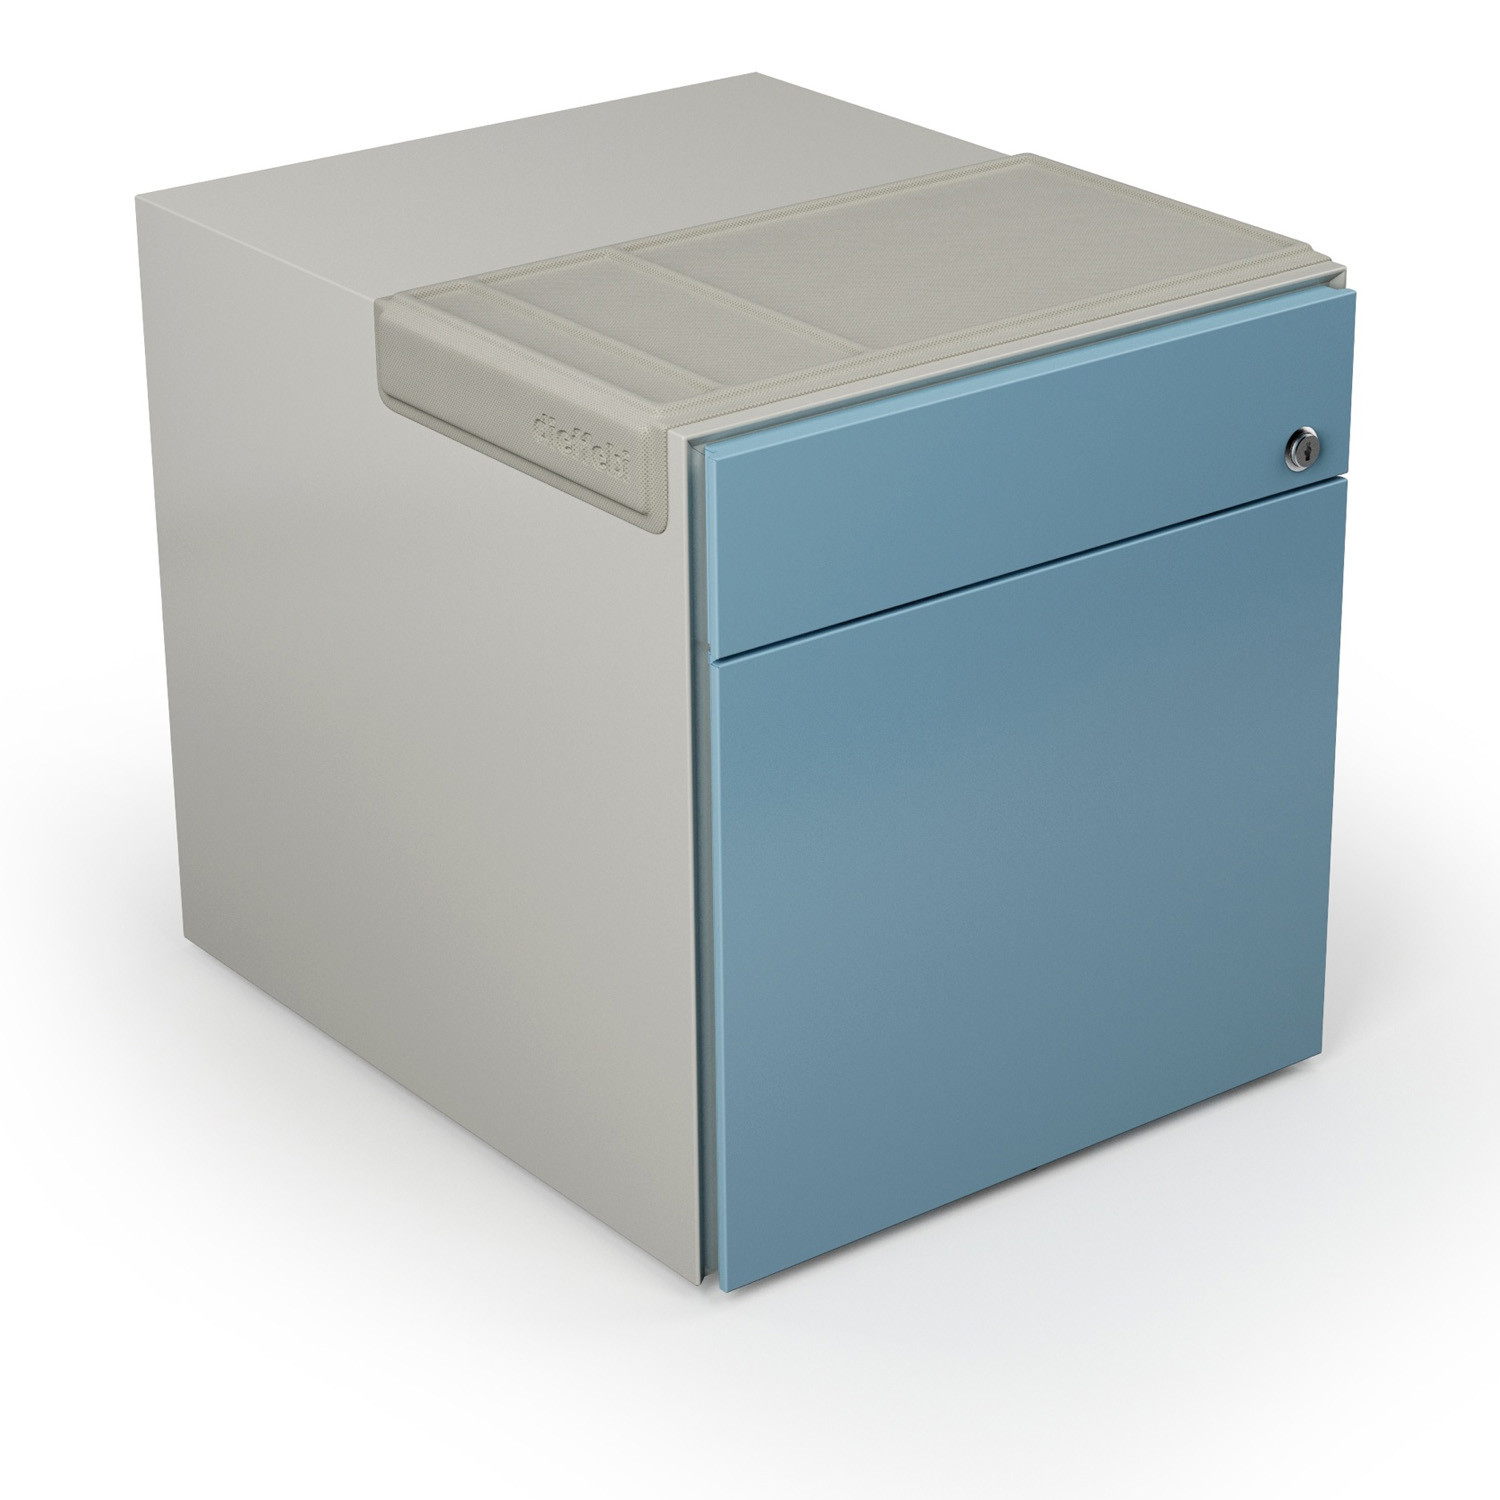 Mia Ped 1 file drawer + 1 stationery drawer